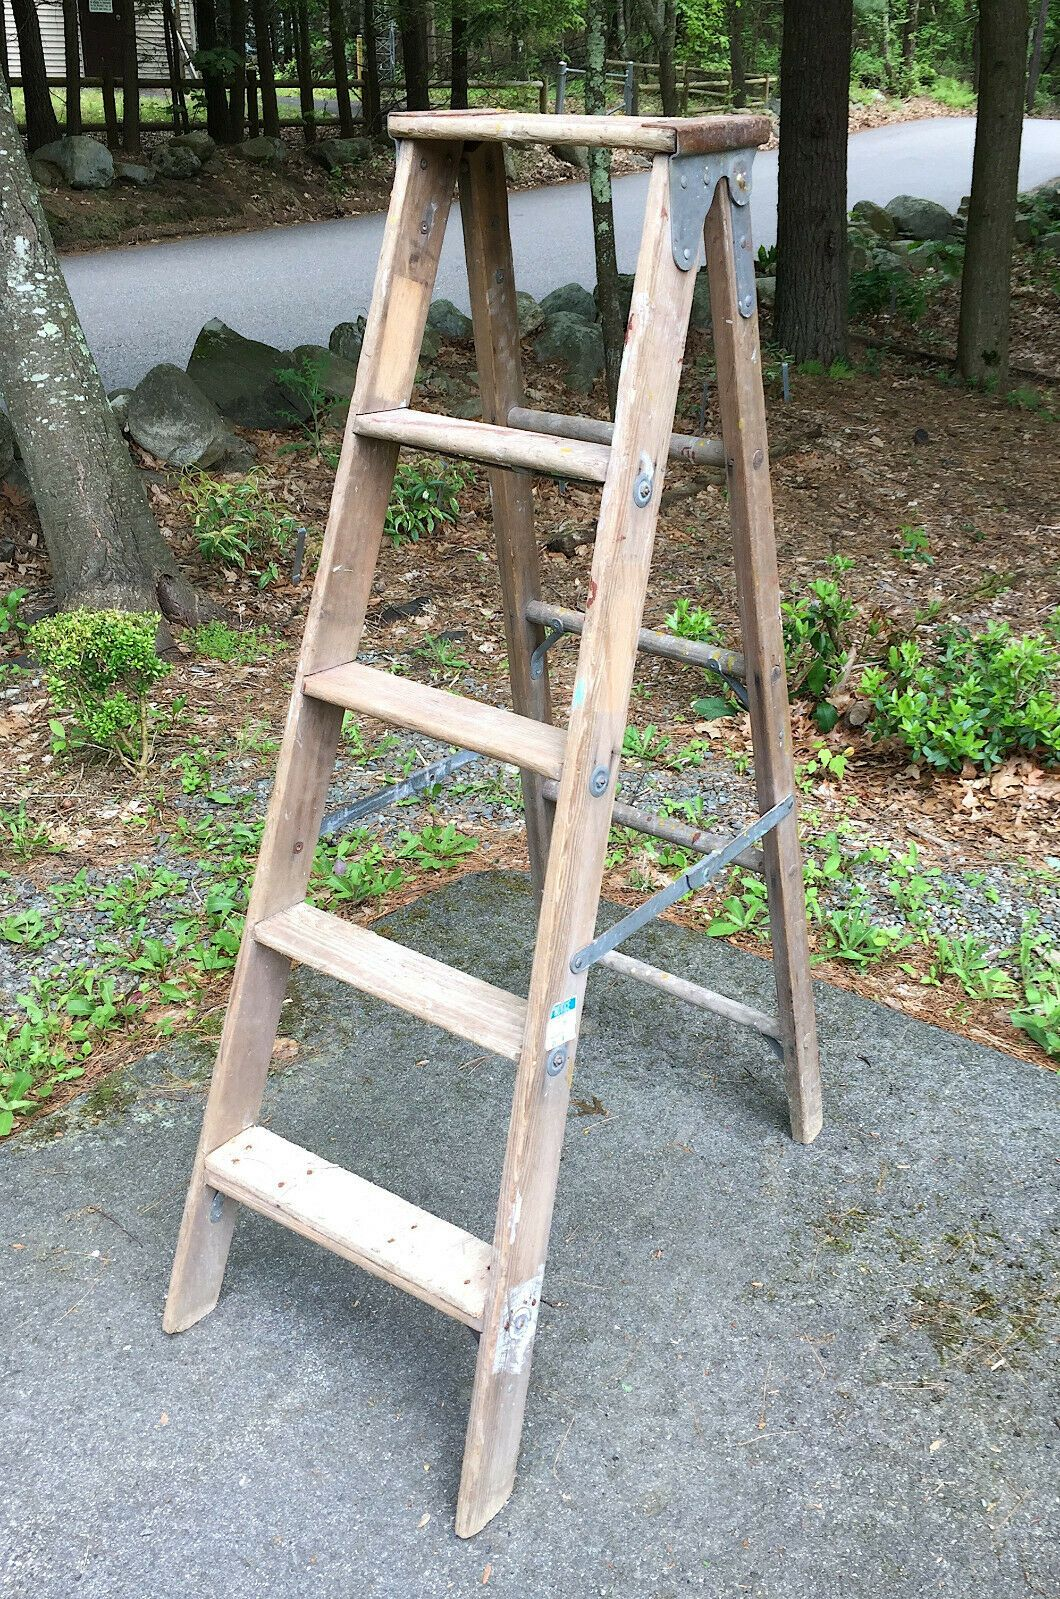 Vintage Old Antique Ladder Rustic Step Wood Folding Ladders Shelve House Decor Ladder Decor Idea Blanket Ladder Decor Rustic Blanket Ladder Wallpaper Decor